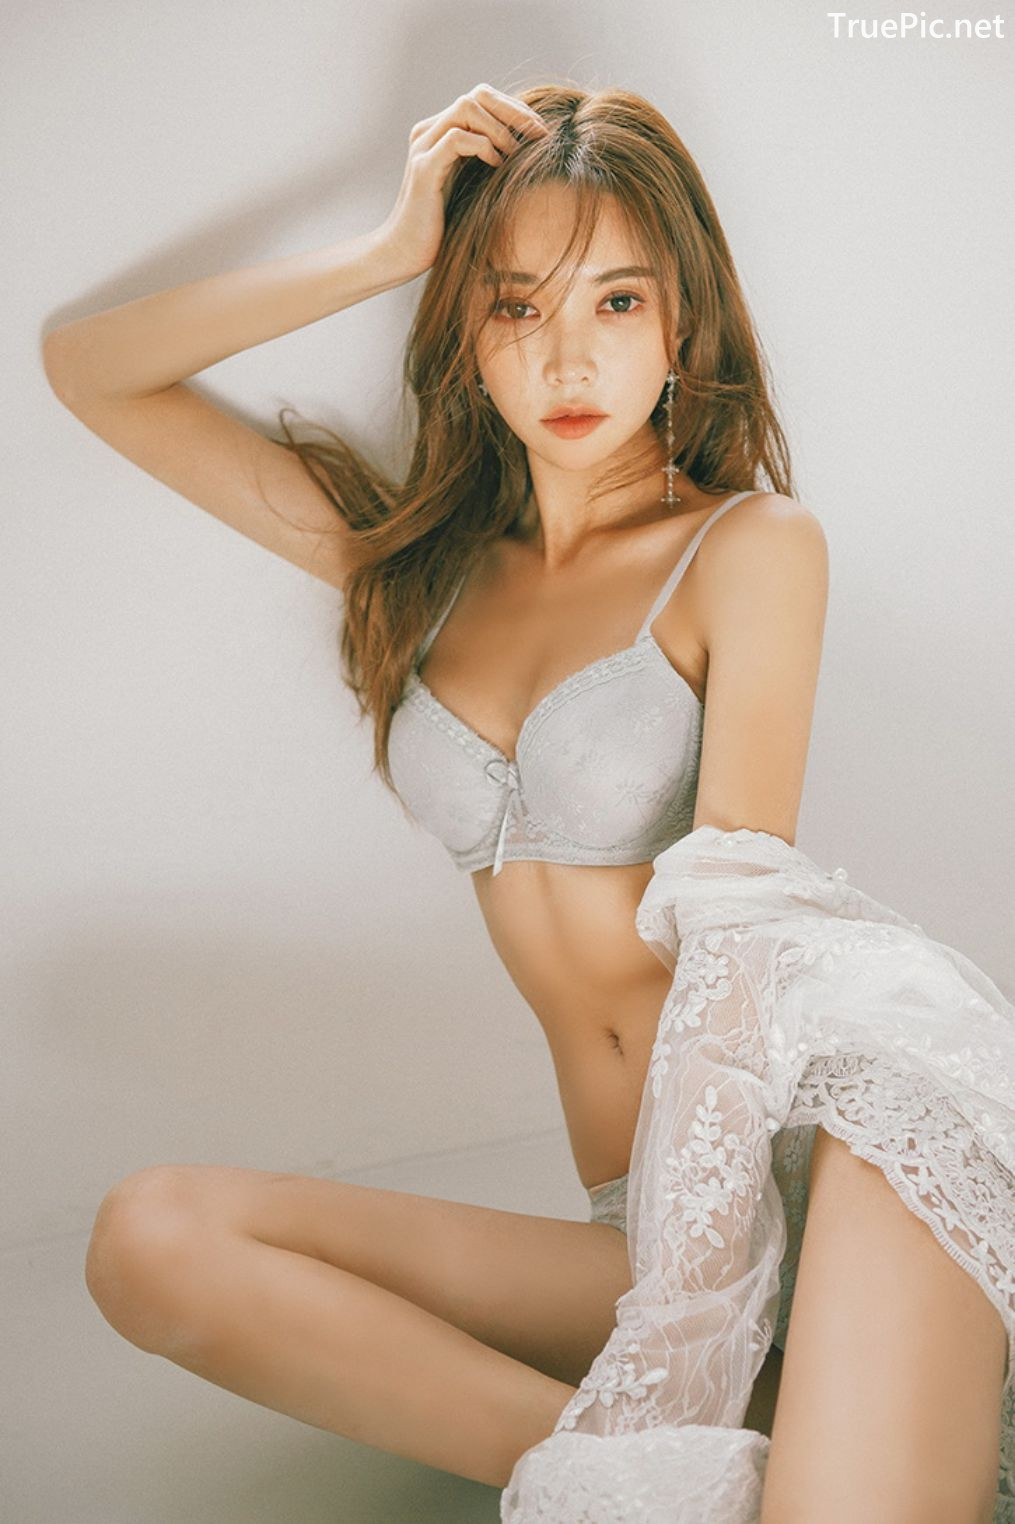 Image Korean Fashion Model - Park Soo Yeon - Light Grey and White Lingerie - TruePic.net - Picture-5